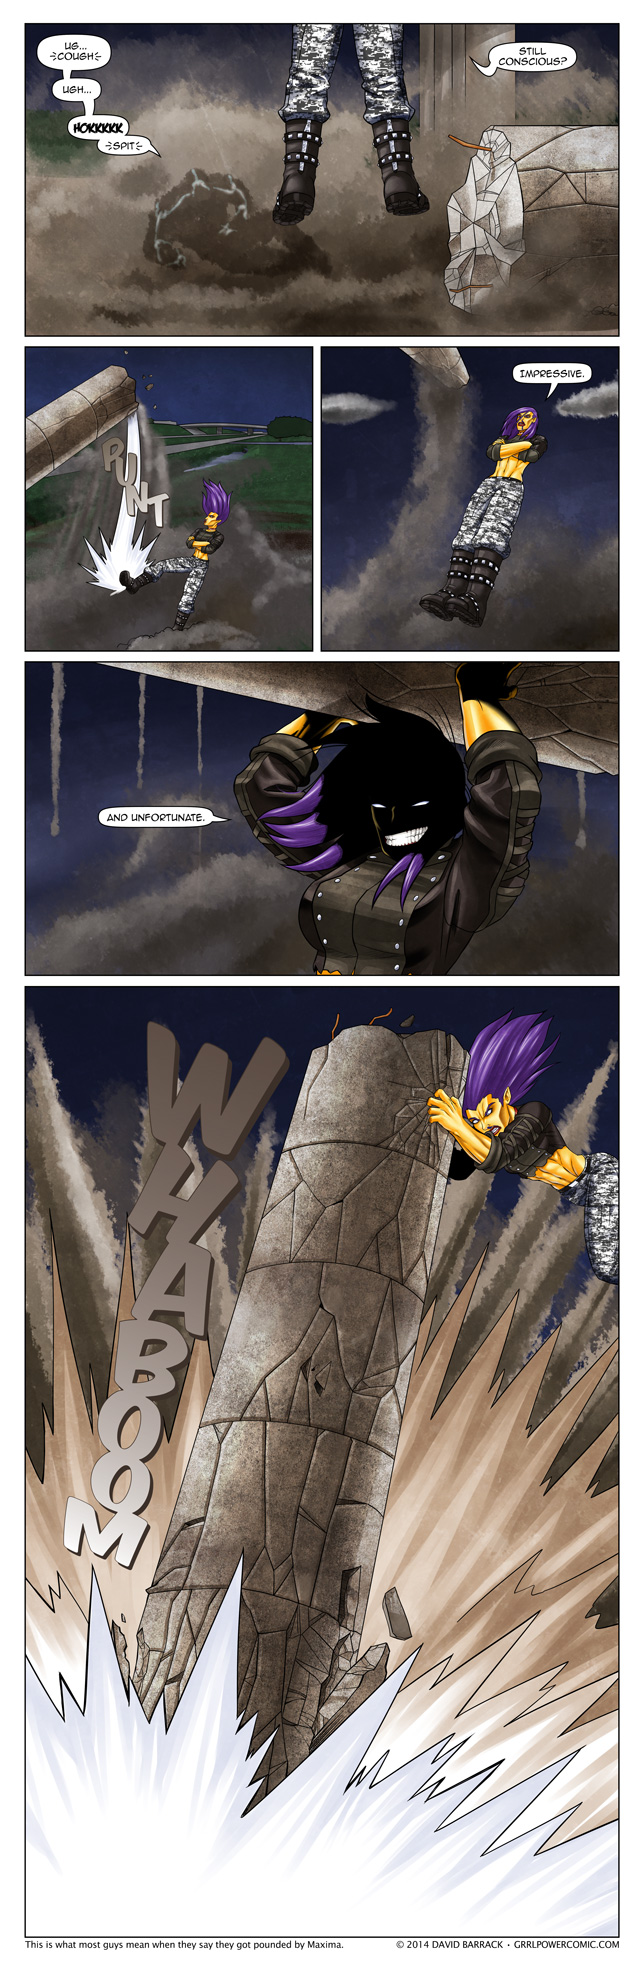 Grrl Power #261 – Pylondriver